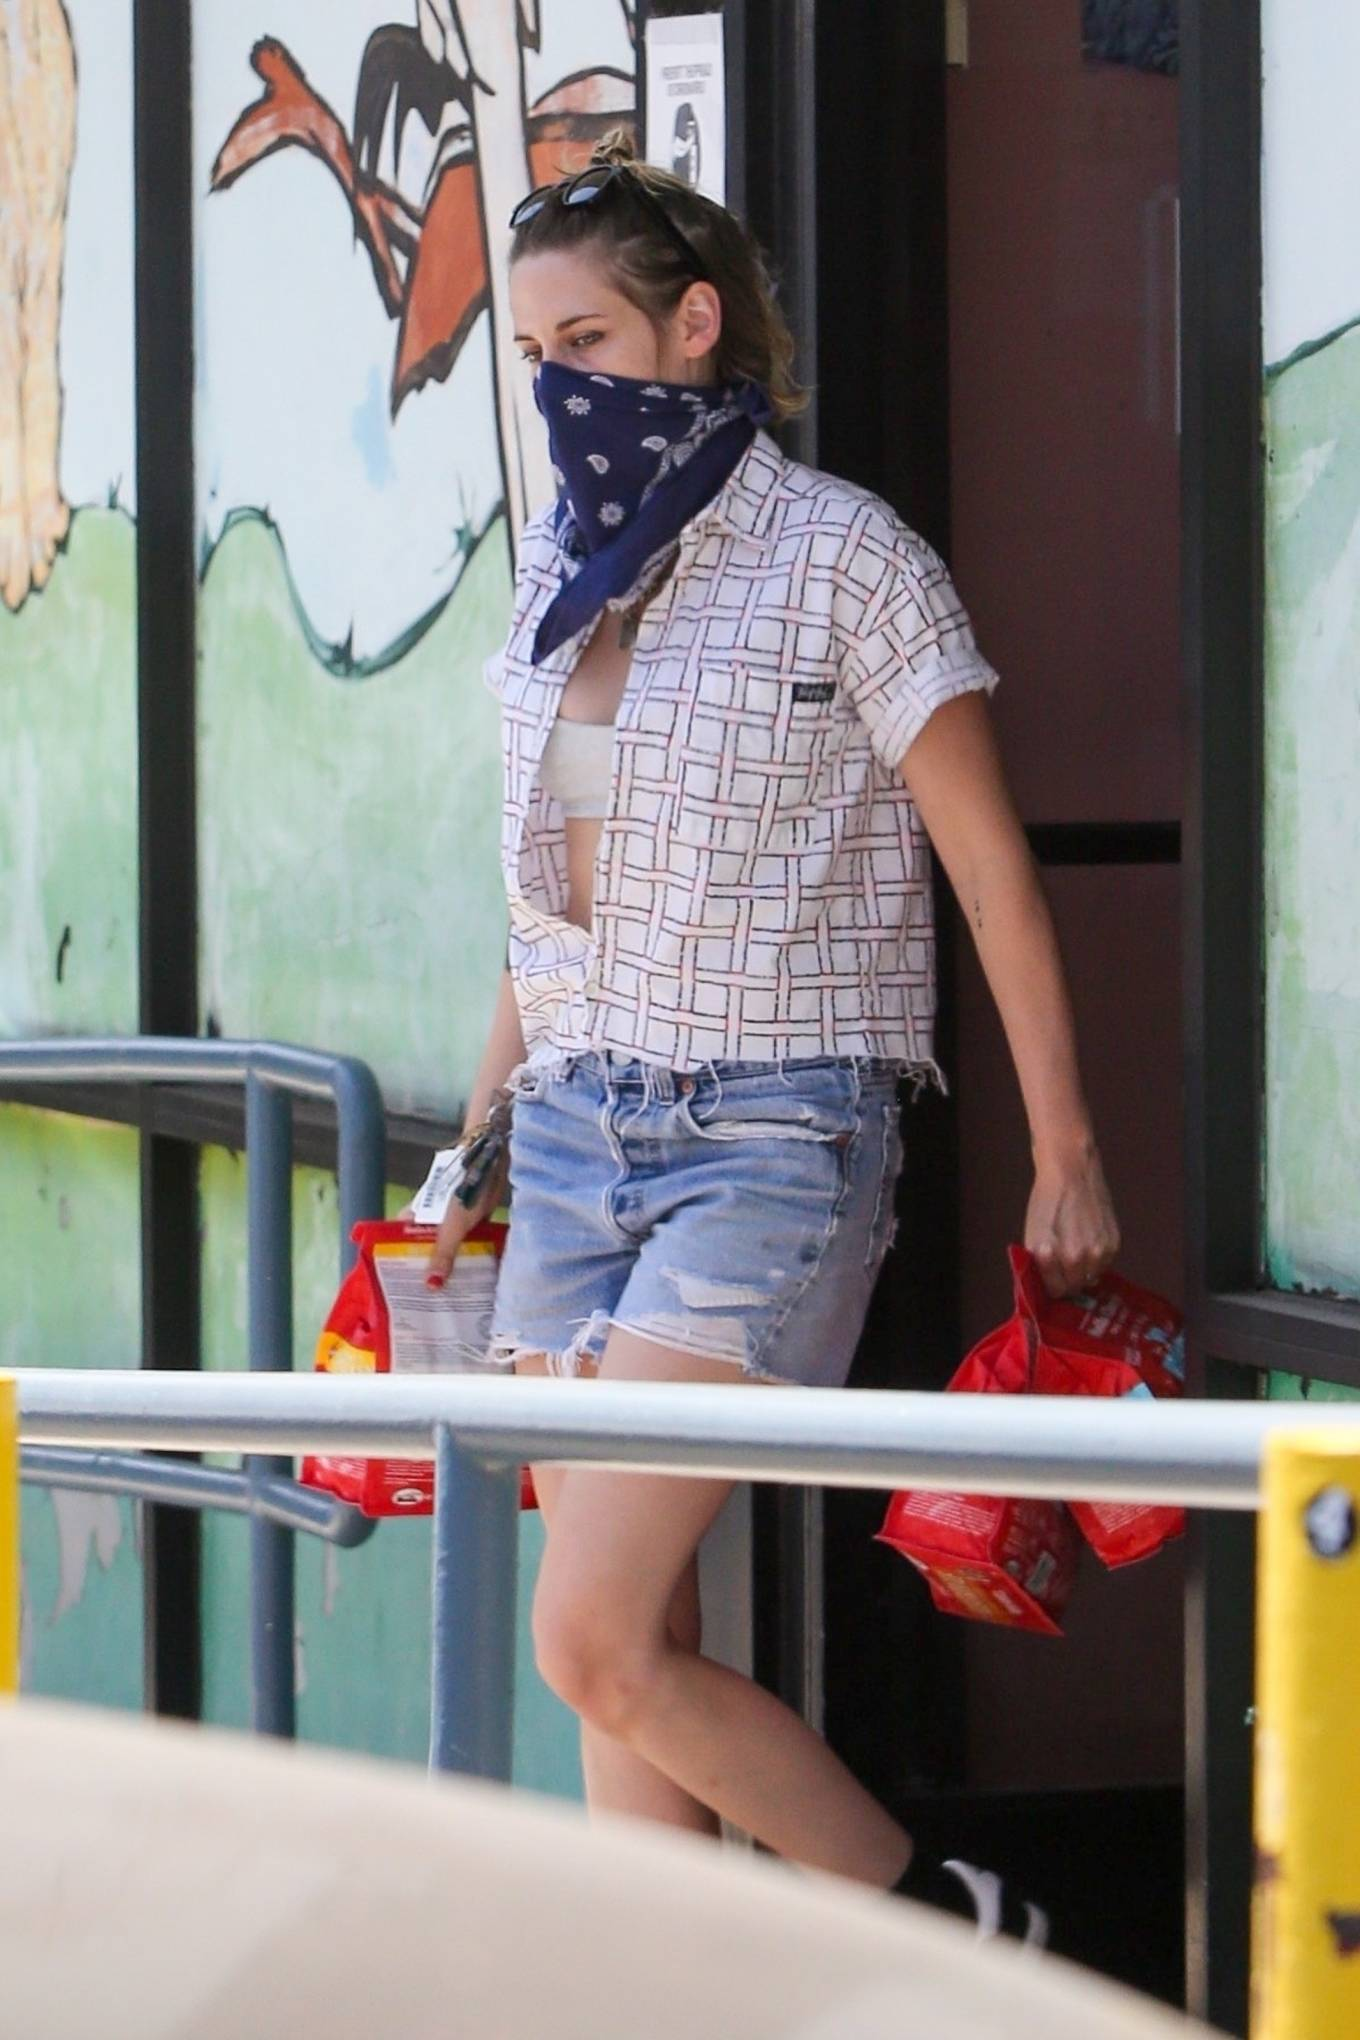 Kristen Stewart donning a White tucked in shirt with rolled sleeves, shirt collar and pattern